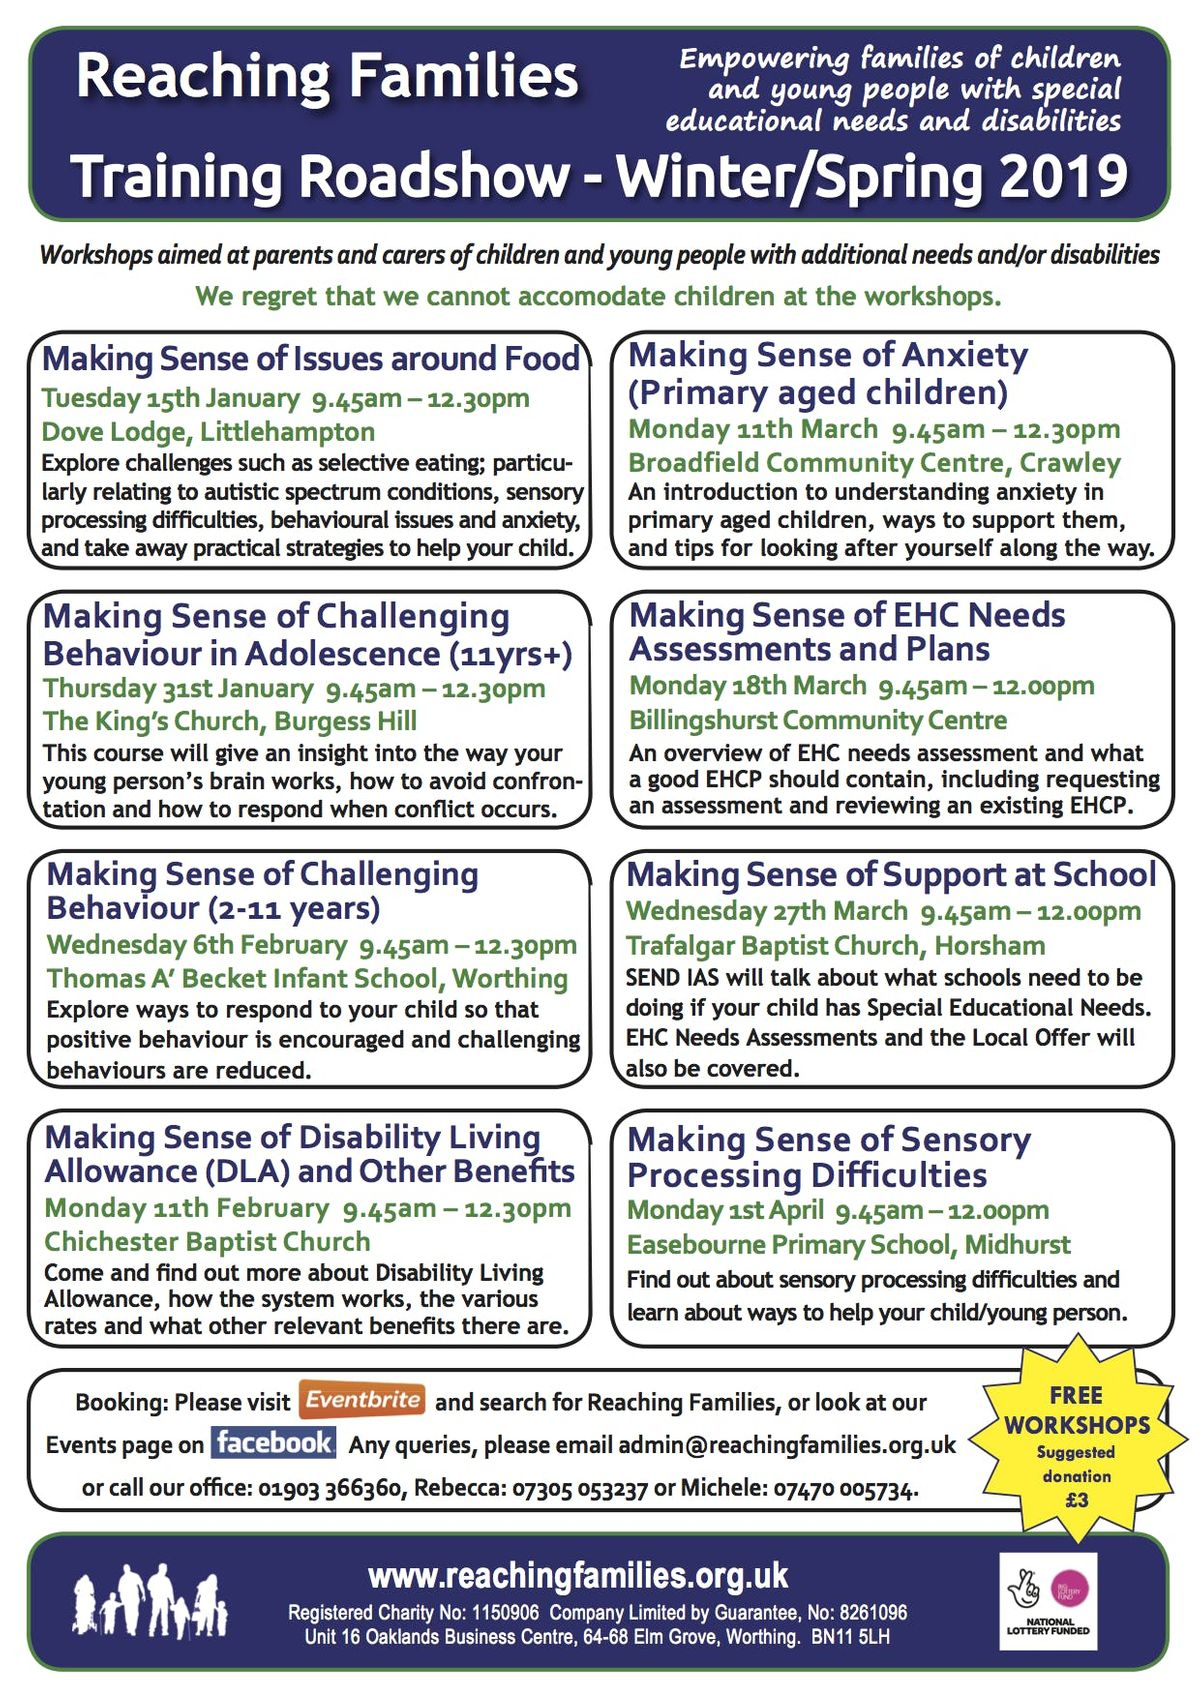 Talking Sense What Sensory Processing >> Making Sense Of Sensory Processing Difficulties At Easebourne